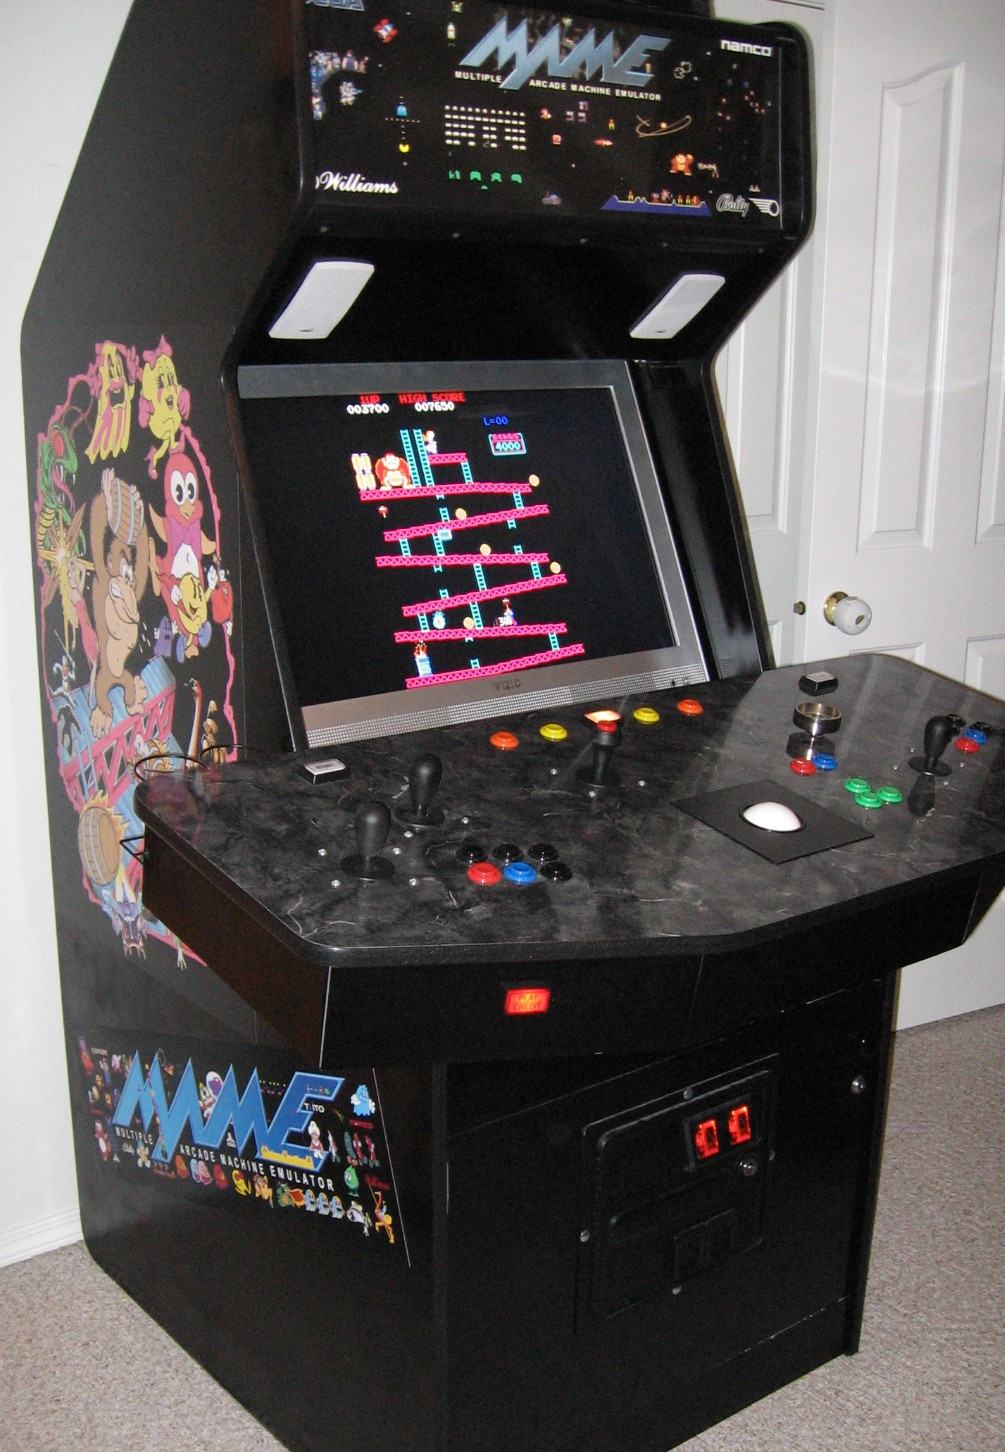 Best ideas about Mame Arcade Cabinet . Save or Pin anybody ever build their own MAME arcade cabinet AR15 Now.